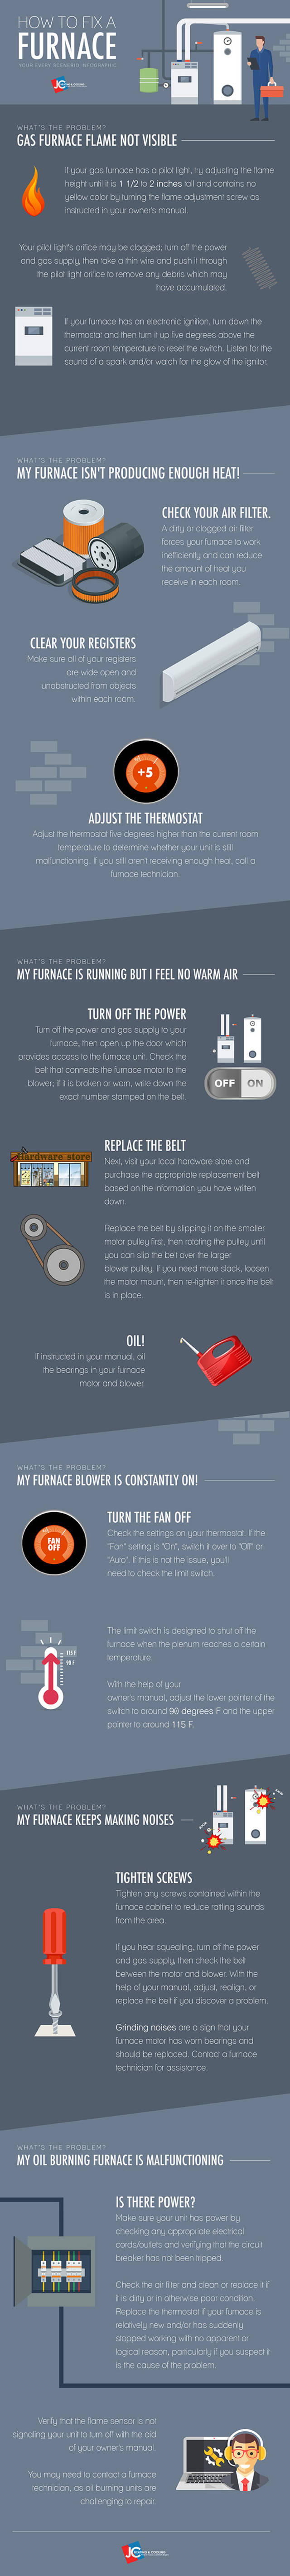 How to fix a furnace infographic 2017